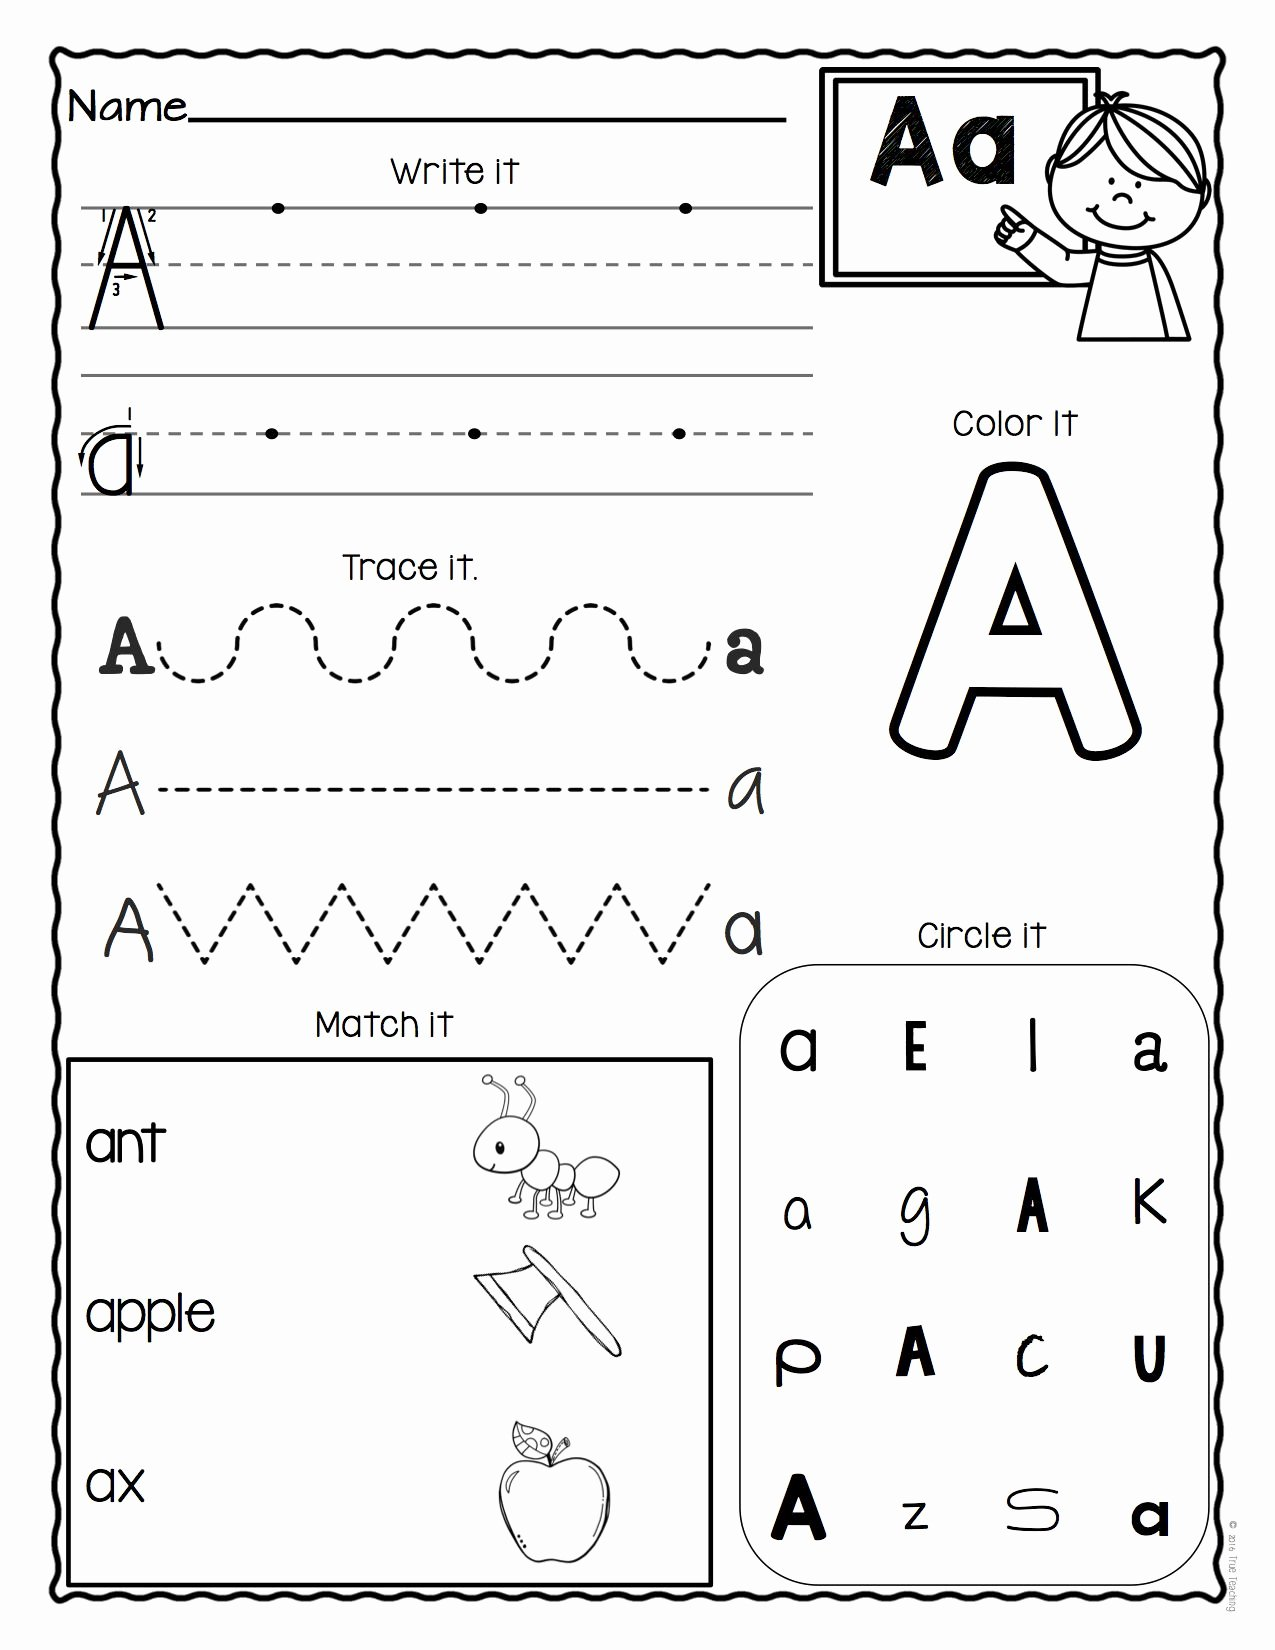 Learning the Alphabet Worksheets for Preschoolers Inspirational A Z Letter Worksheets Set 3